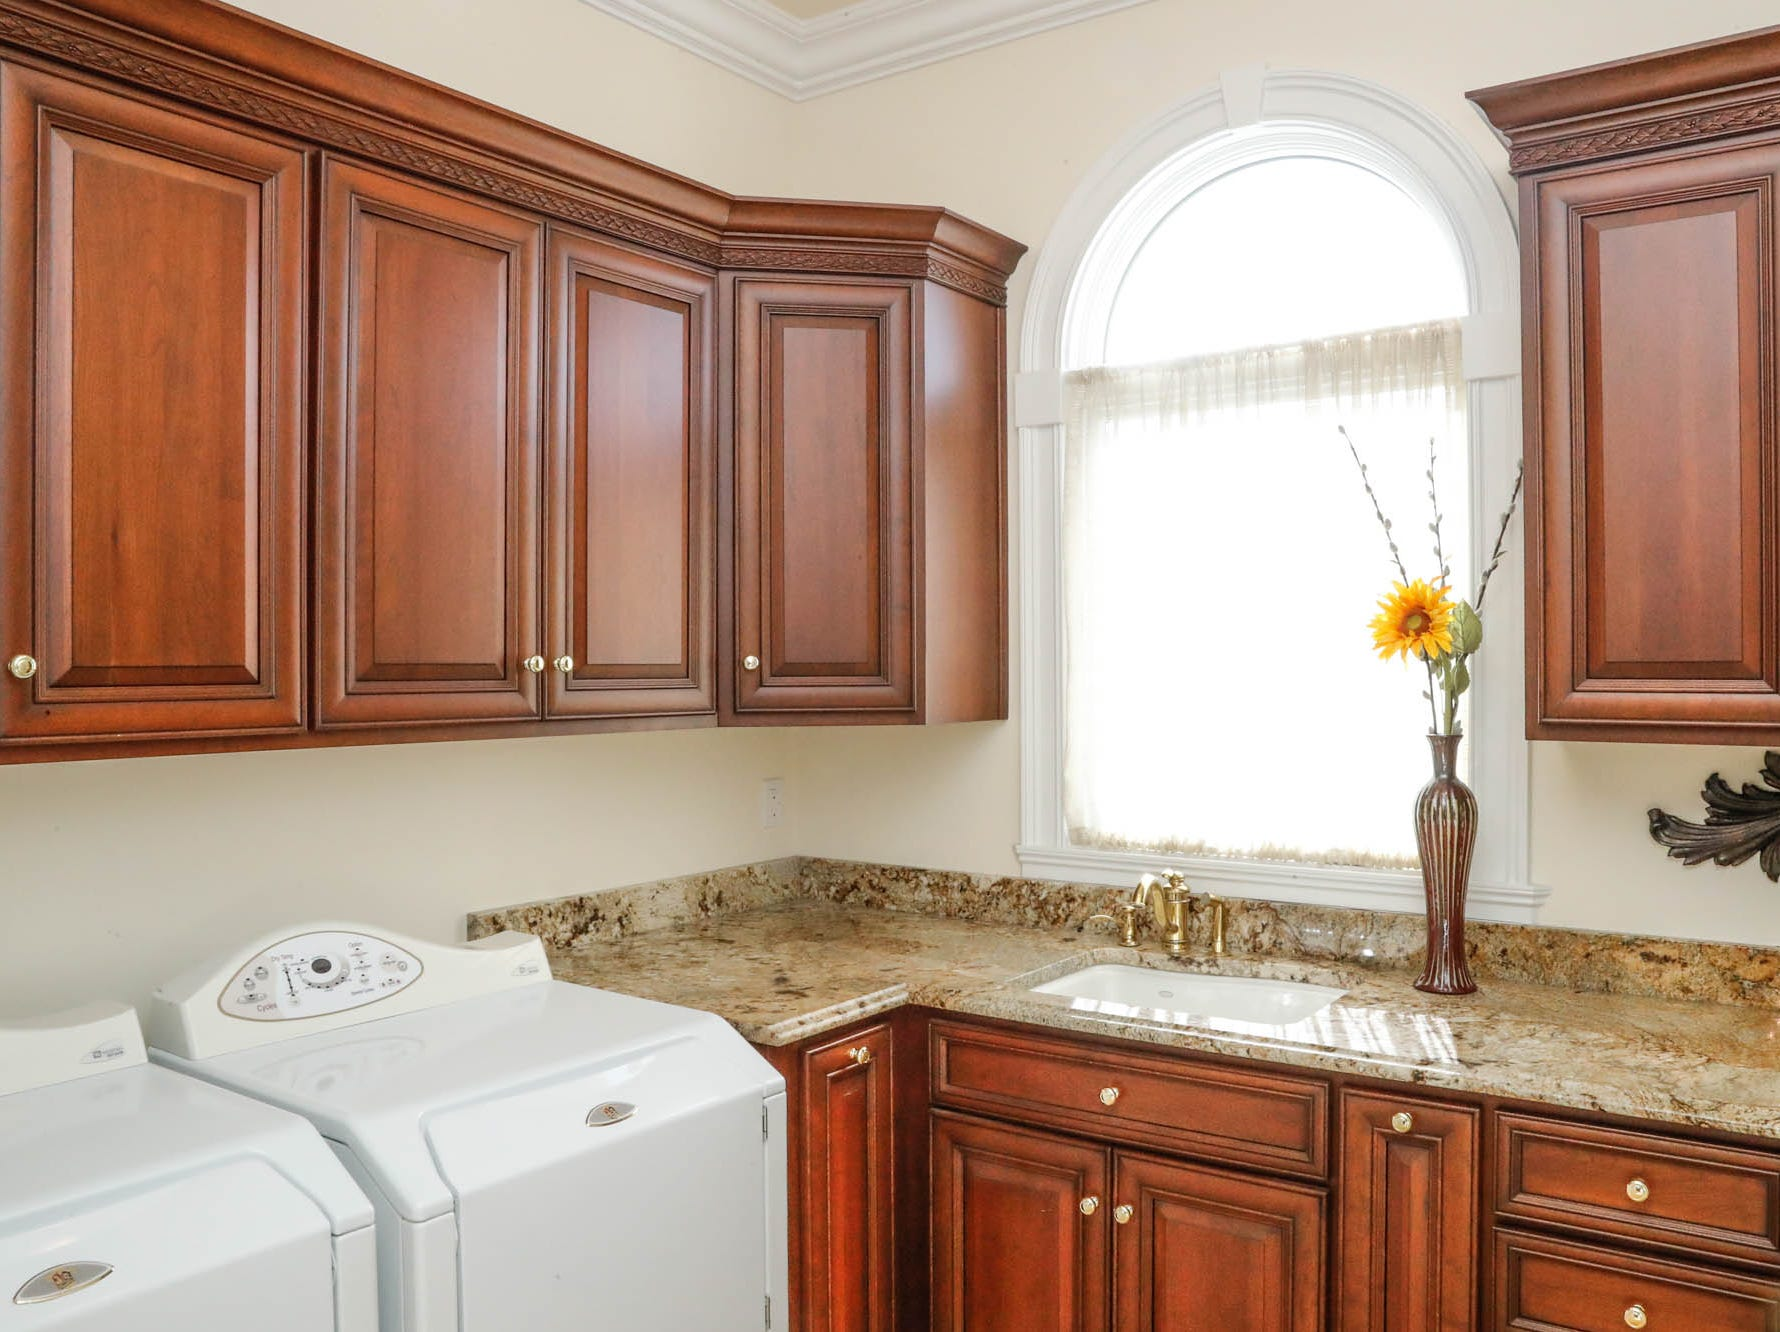 One of two laundry spaces features a rounded window at a Greenwood home up for sale at 1216 Stone Ridge Court, Greenwood, Ind. on Wednesday, Jan. 30, 2019. The home features 8,234 square feet, four bedrooms, two master suits, a 10 car garage, and exercise room.